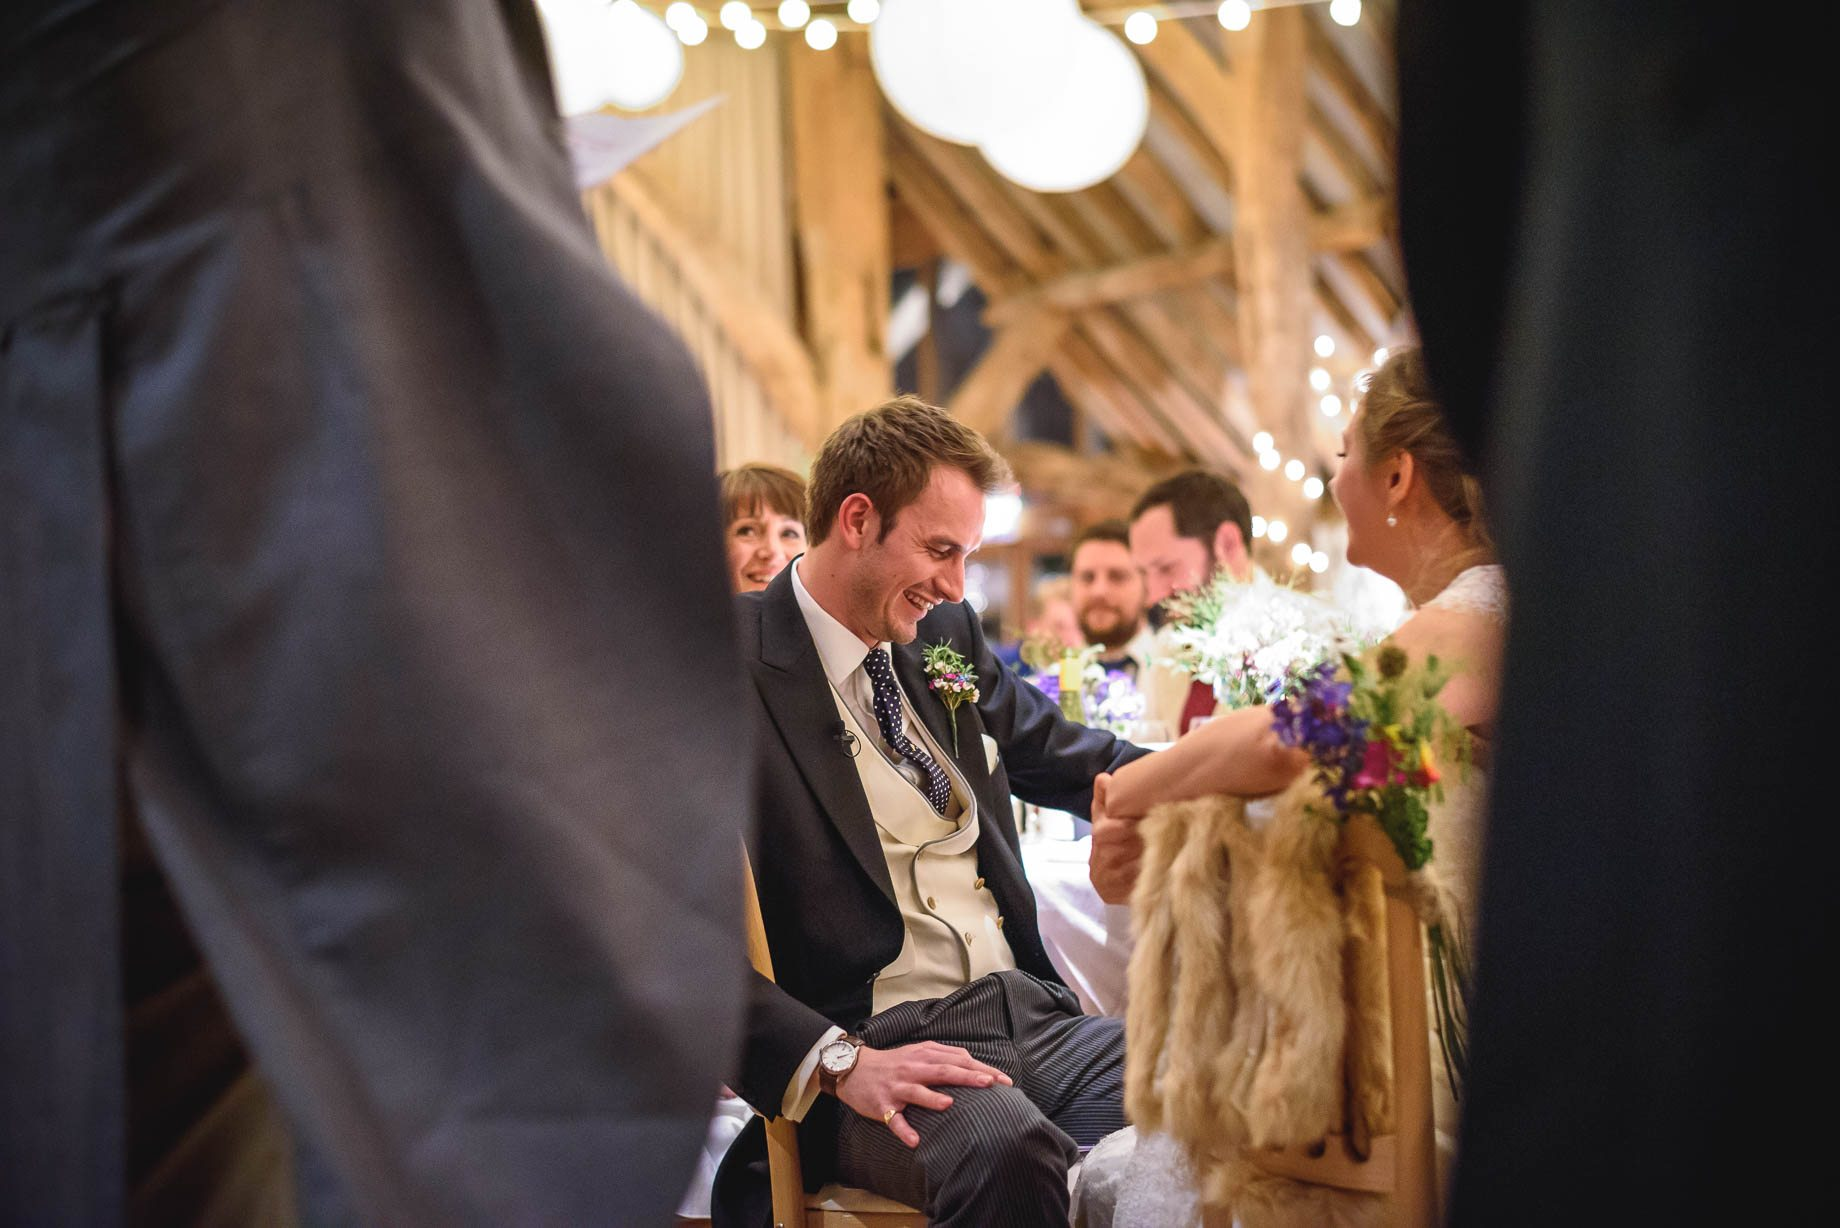 Bury Court Barn wedding photography - Ashley and Henry by Guy Collier Photography (156 of 188)